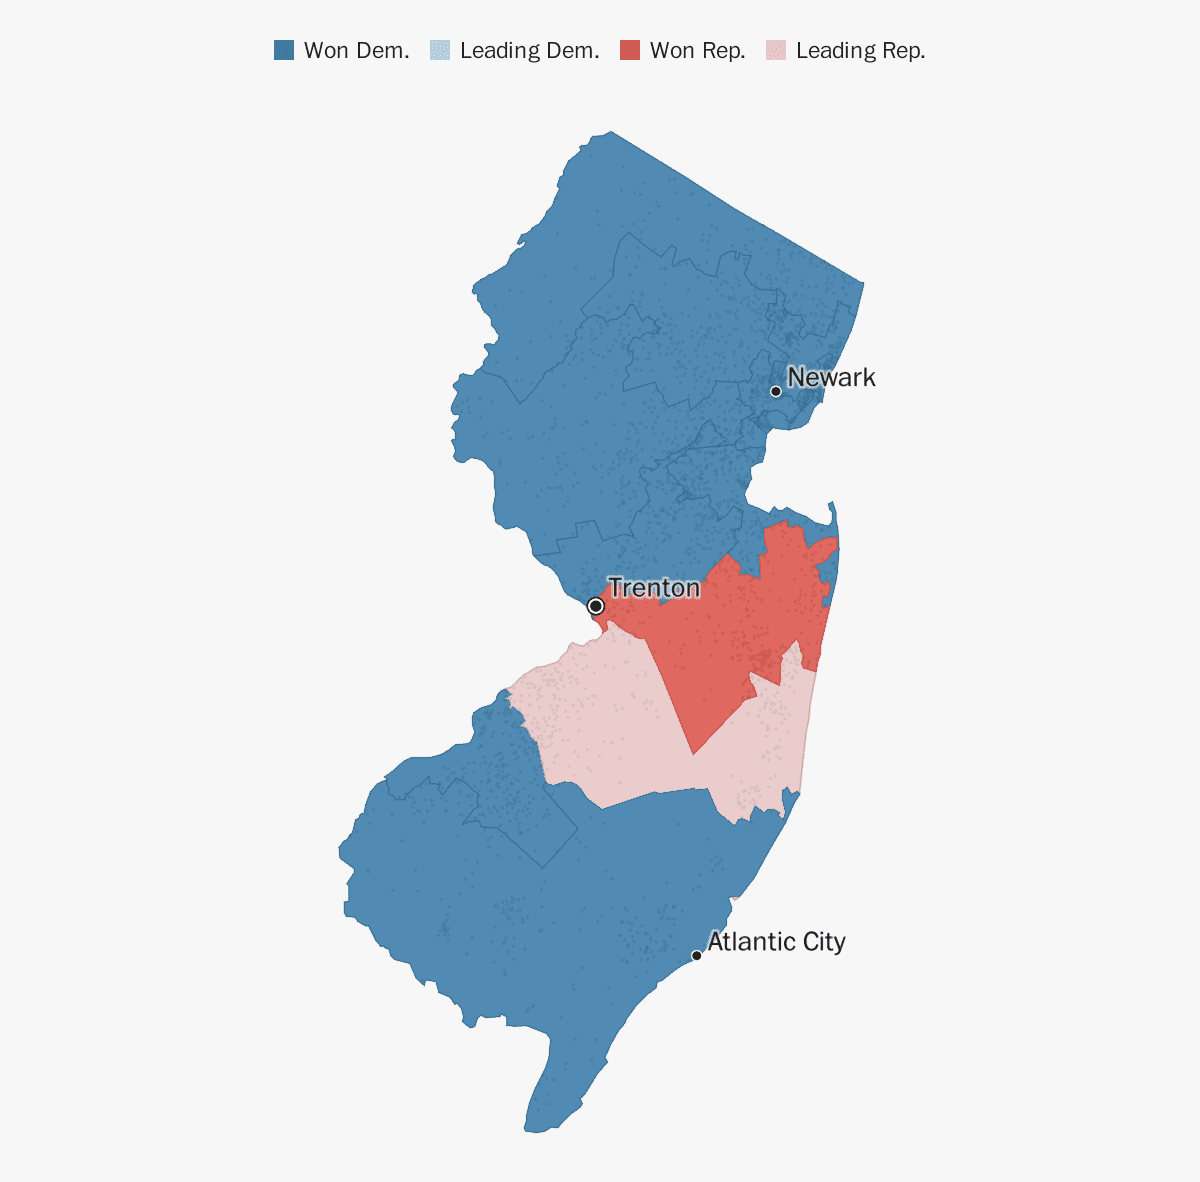 New Jersey election results 2018 - The Washington Post